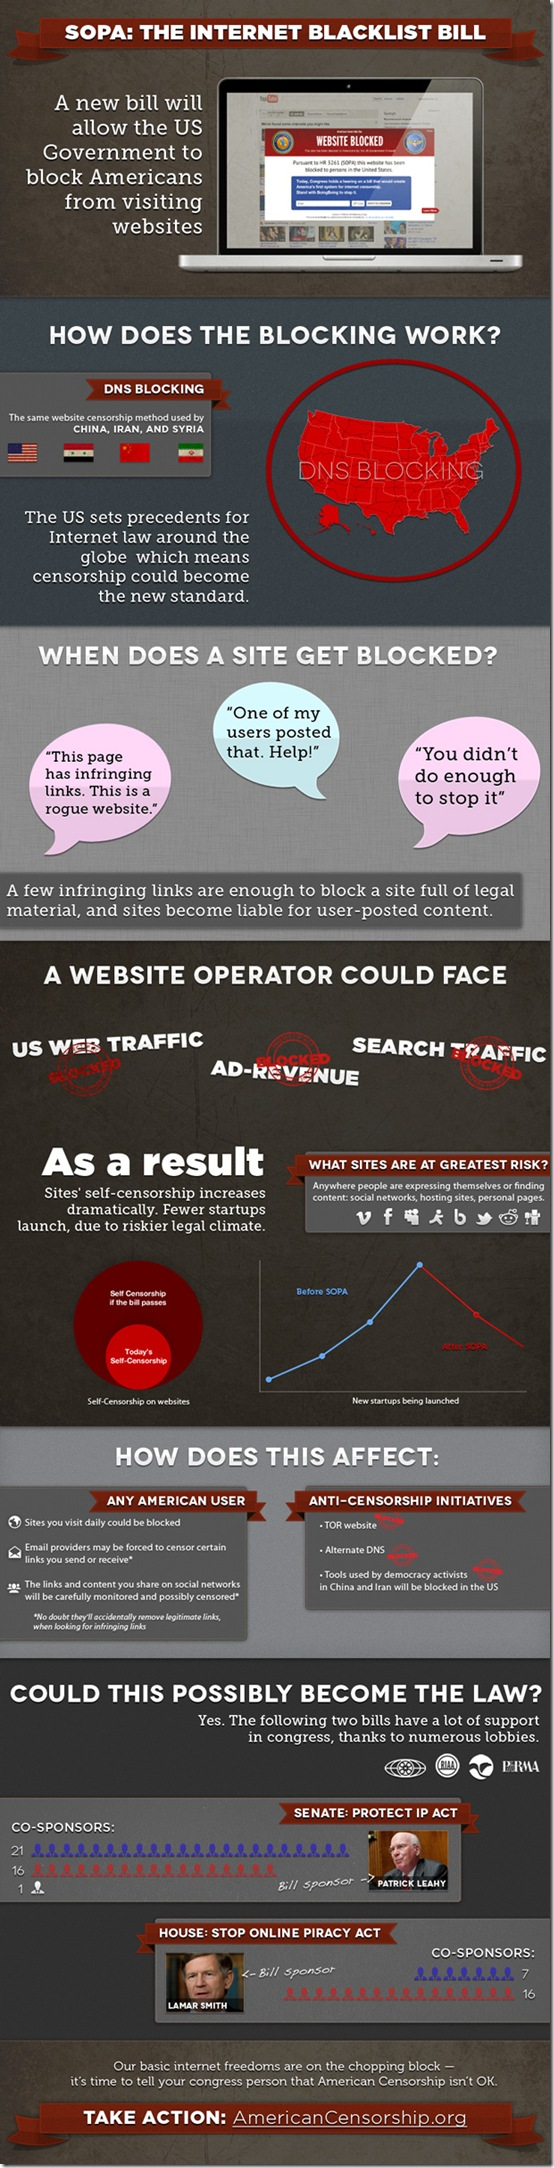 sopa infographic